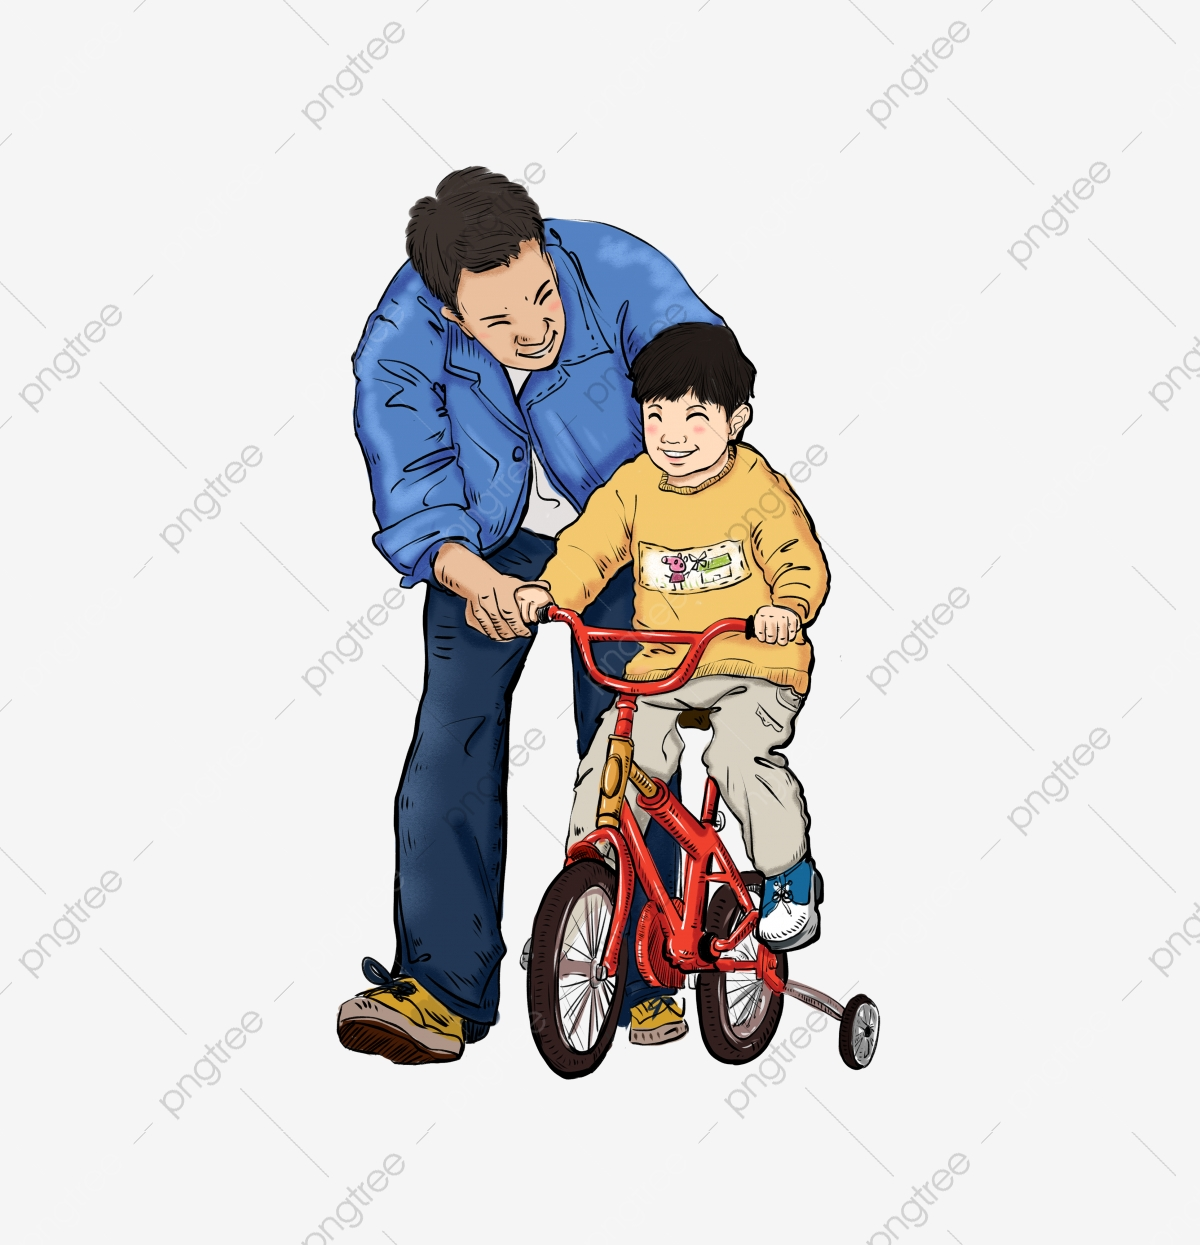 Son clipart happy father. Fathers day hand drawing